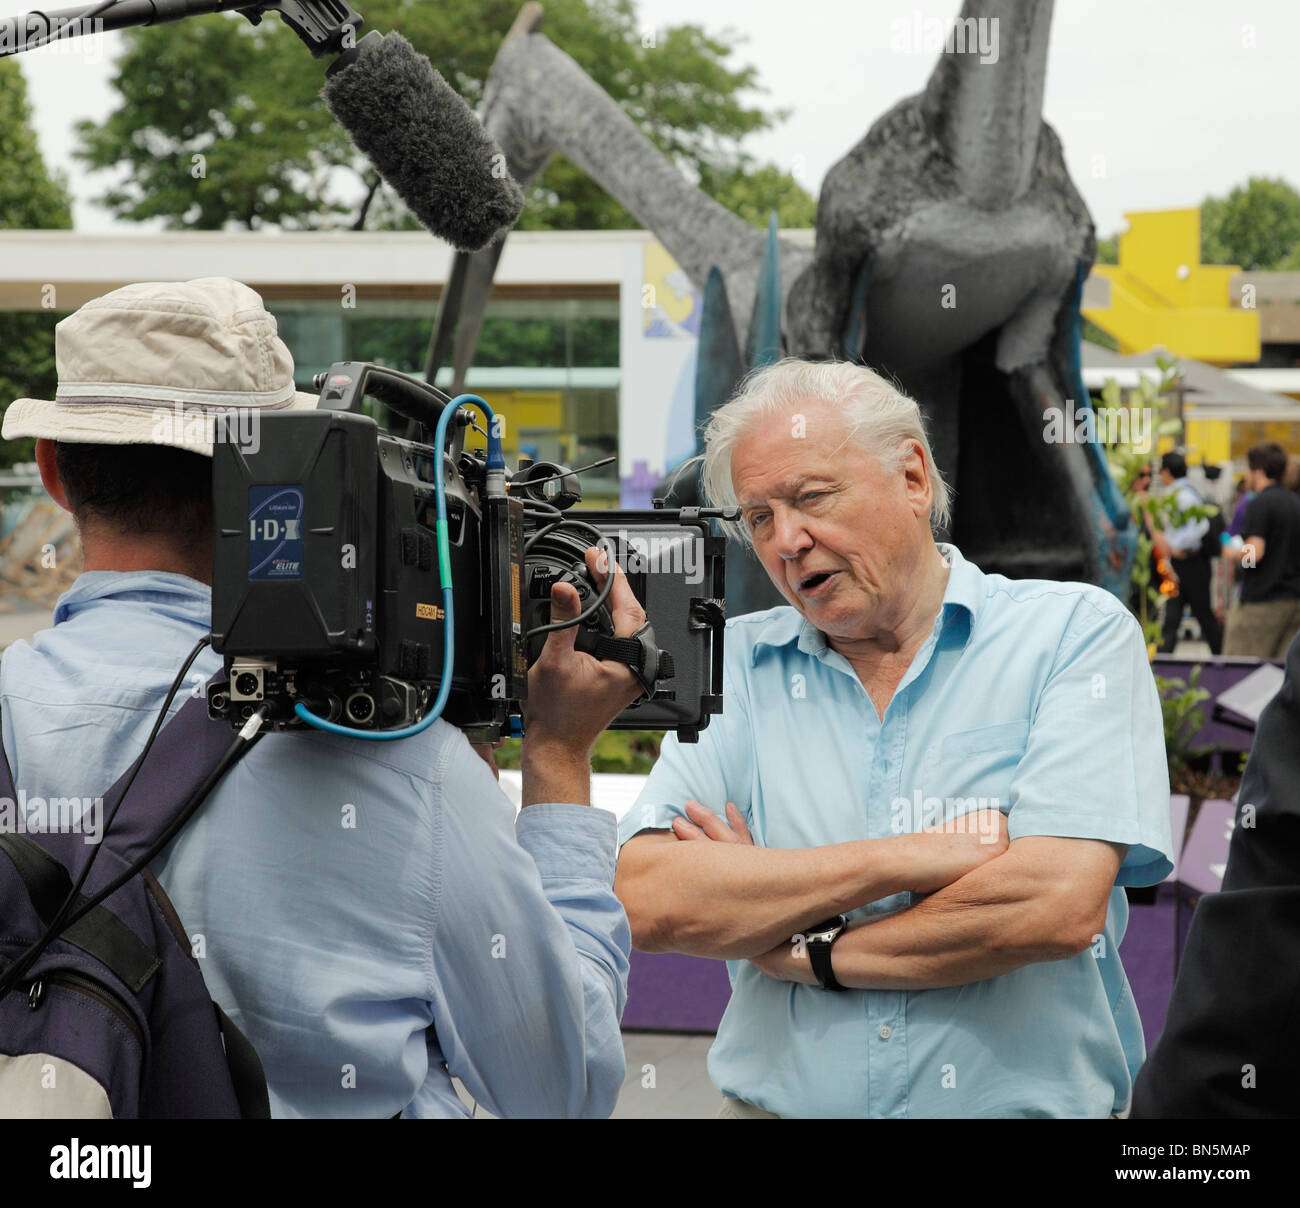 Sir David Attenborough being filmed beside an exhibition of Pterosaurs at the Southbank Centre, London. - Stock Image